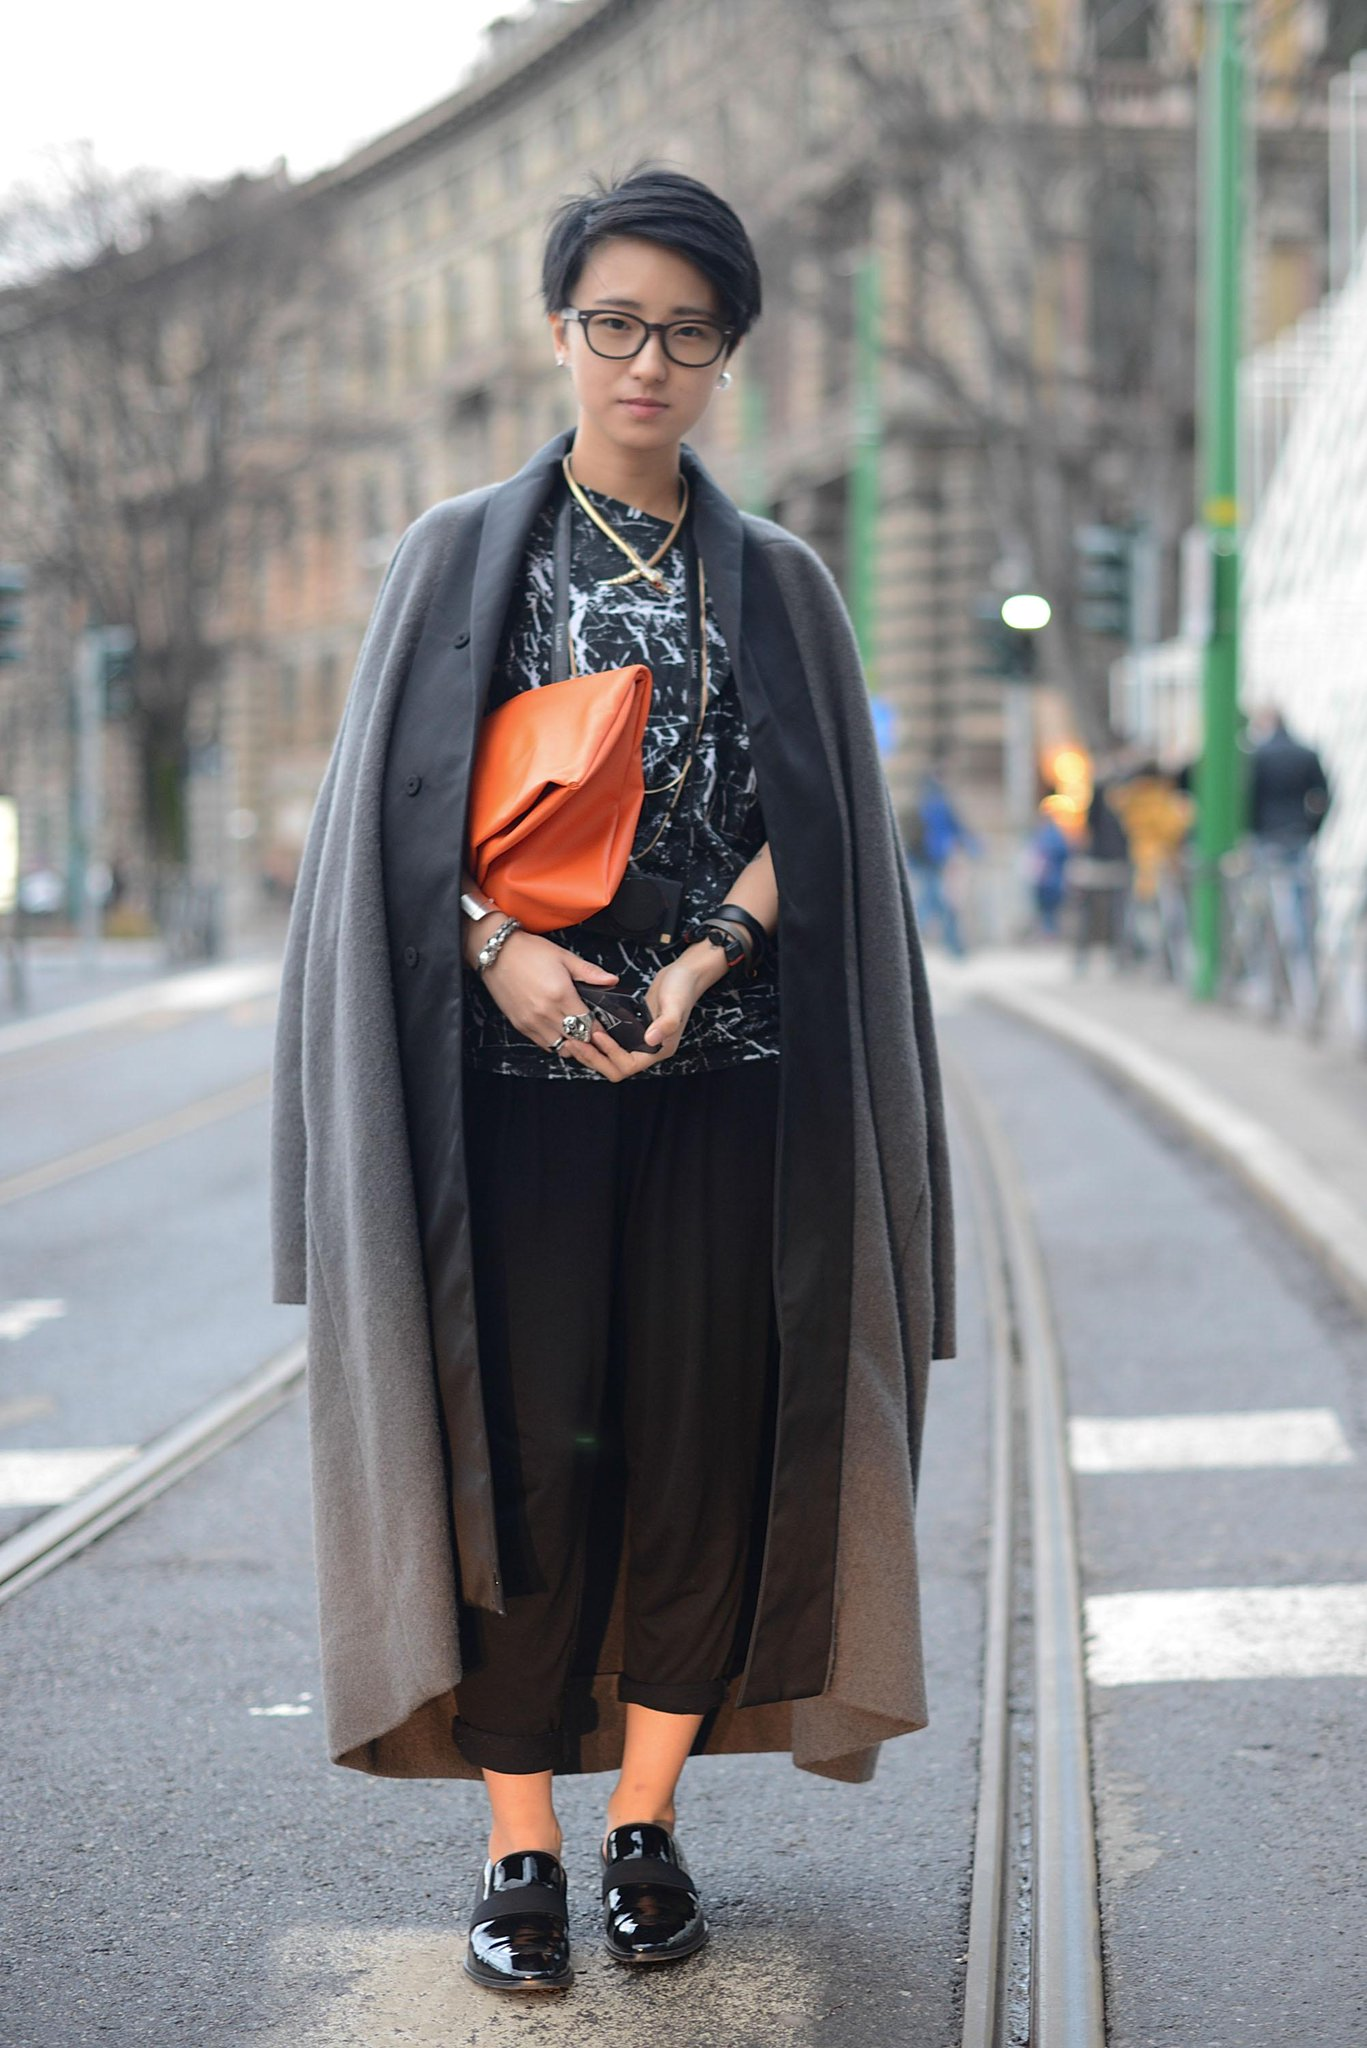 #streetstyle photos to hep you out of your #Winter style rut. http://t.co/uJSkoOvykI http://t.co/Rp0rrU5XRd